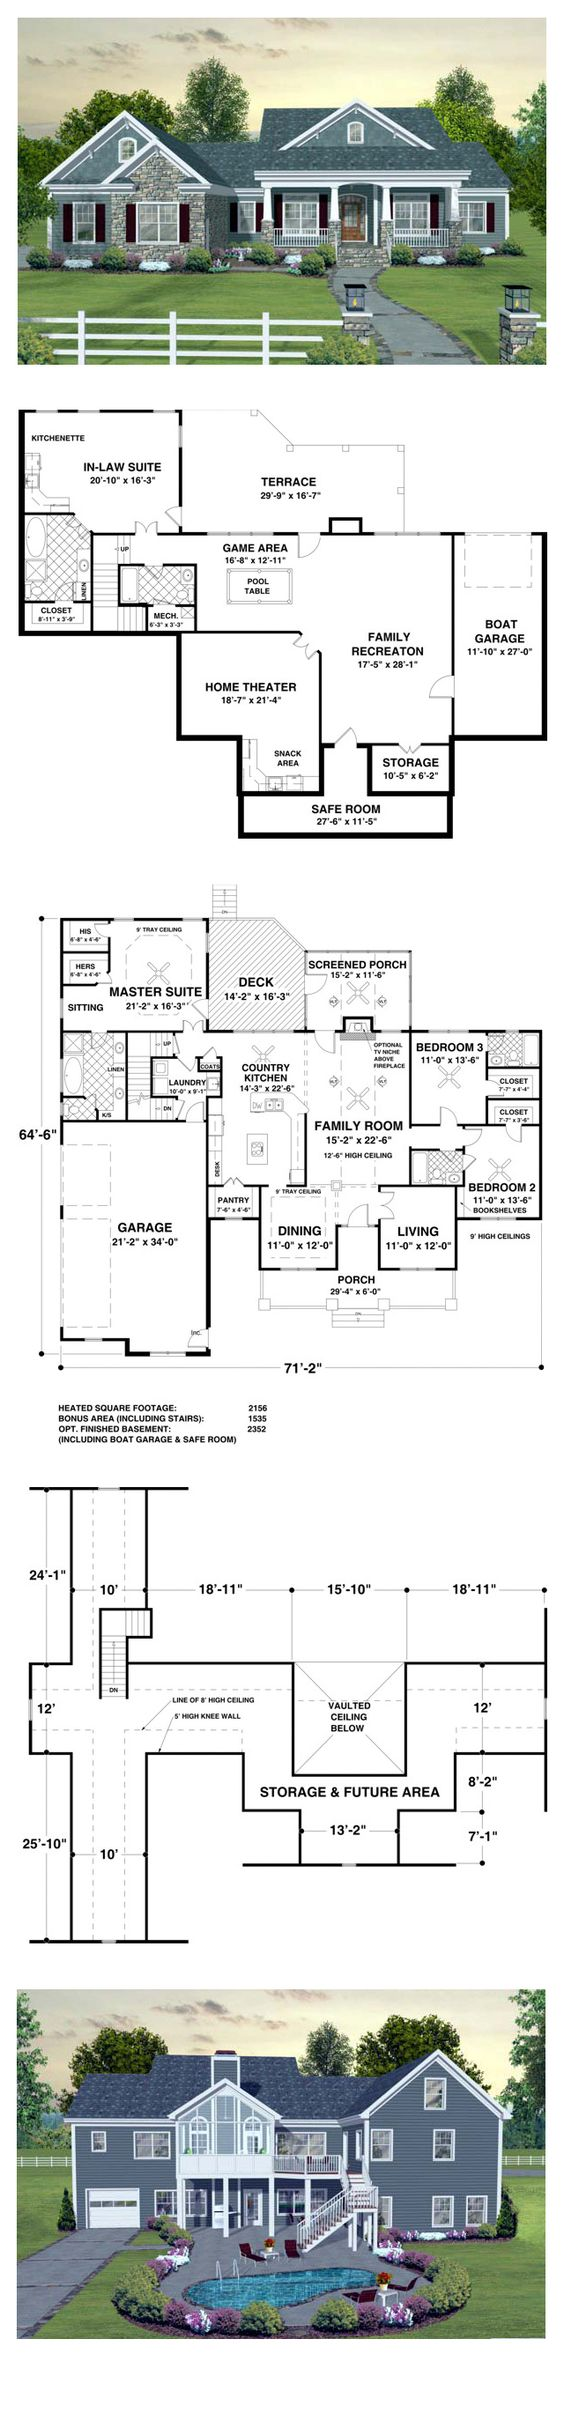 Craftsman european traditional house plan 93483 for Craftsman floor plans with basement